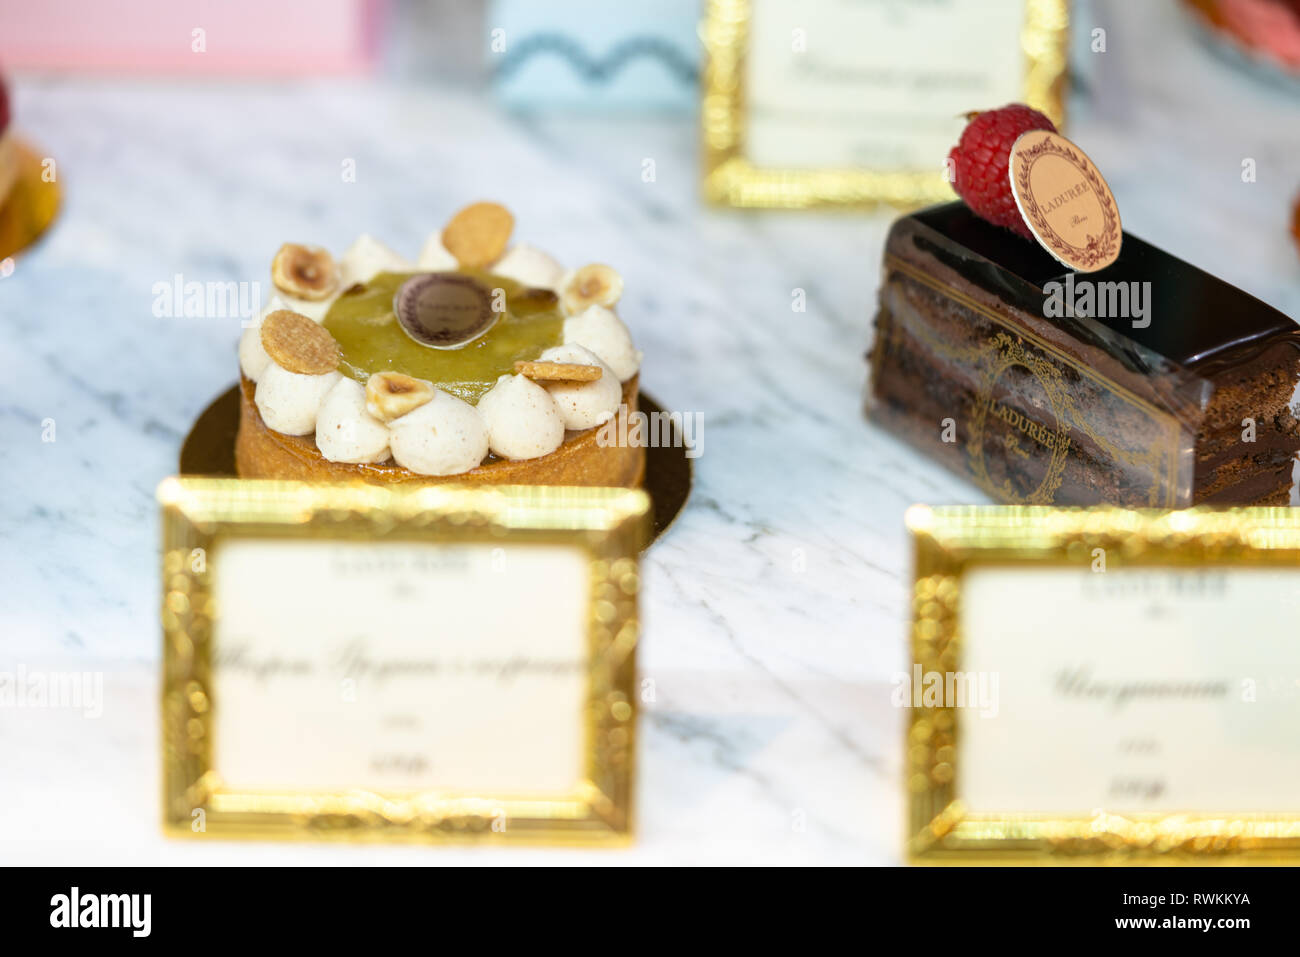 Delicious cakes on a coffee shop.  Sweet. Beautiful. Food styling. Stock Photo